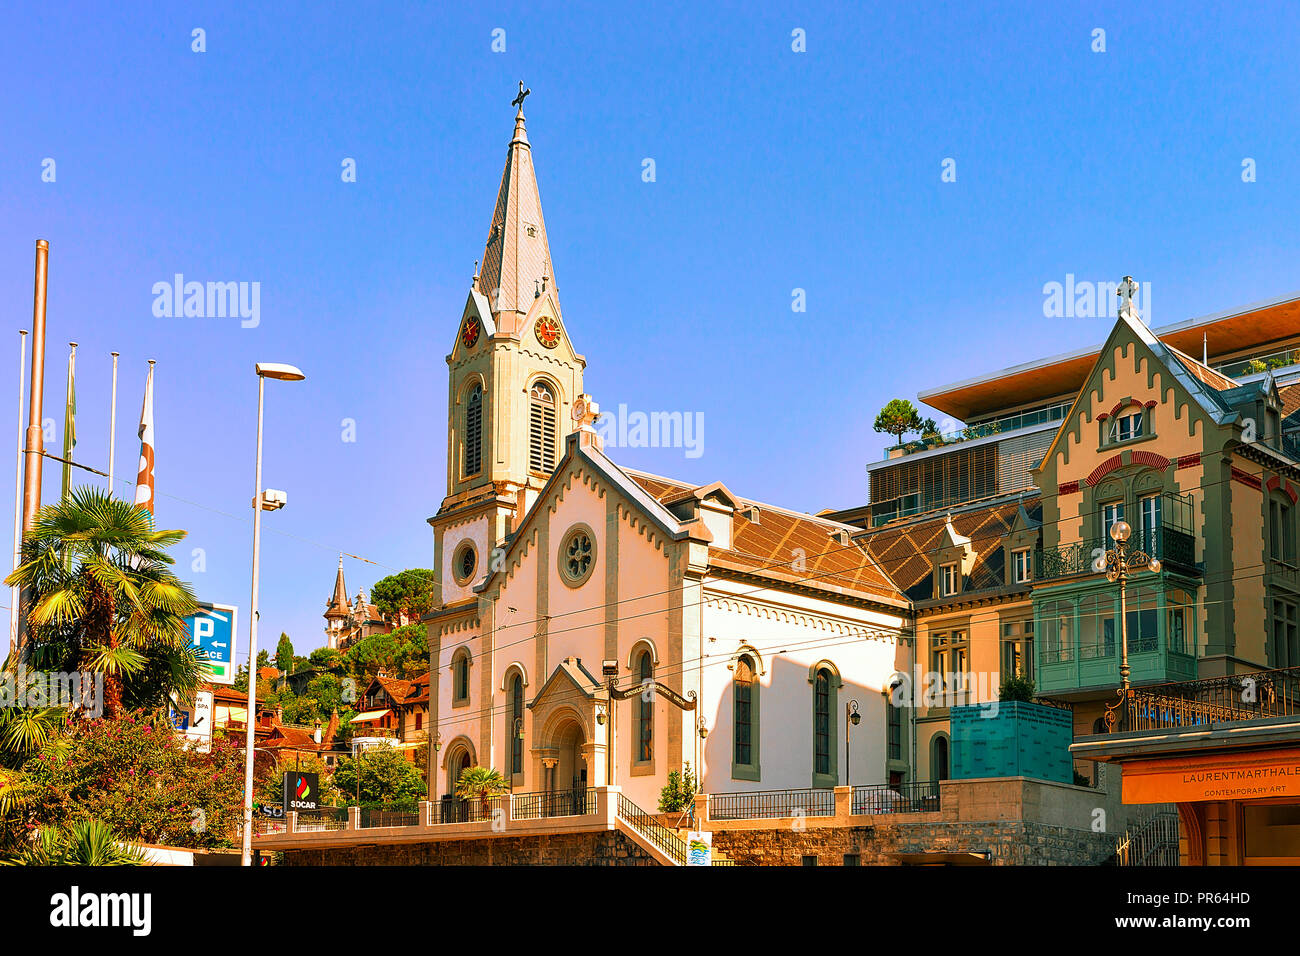 Montreux, Switzerland - August 28, 2016: Church at Geneva Lake in Montreux, Swiss Riviera - Stock Image